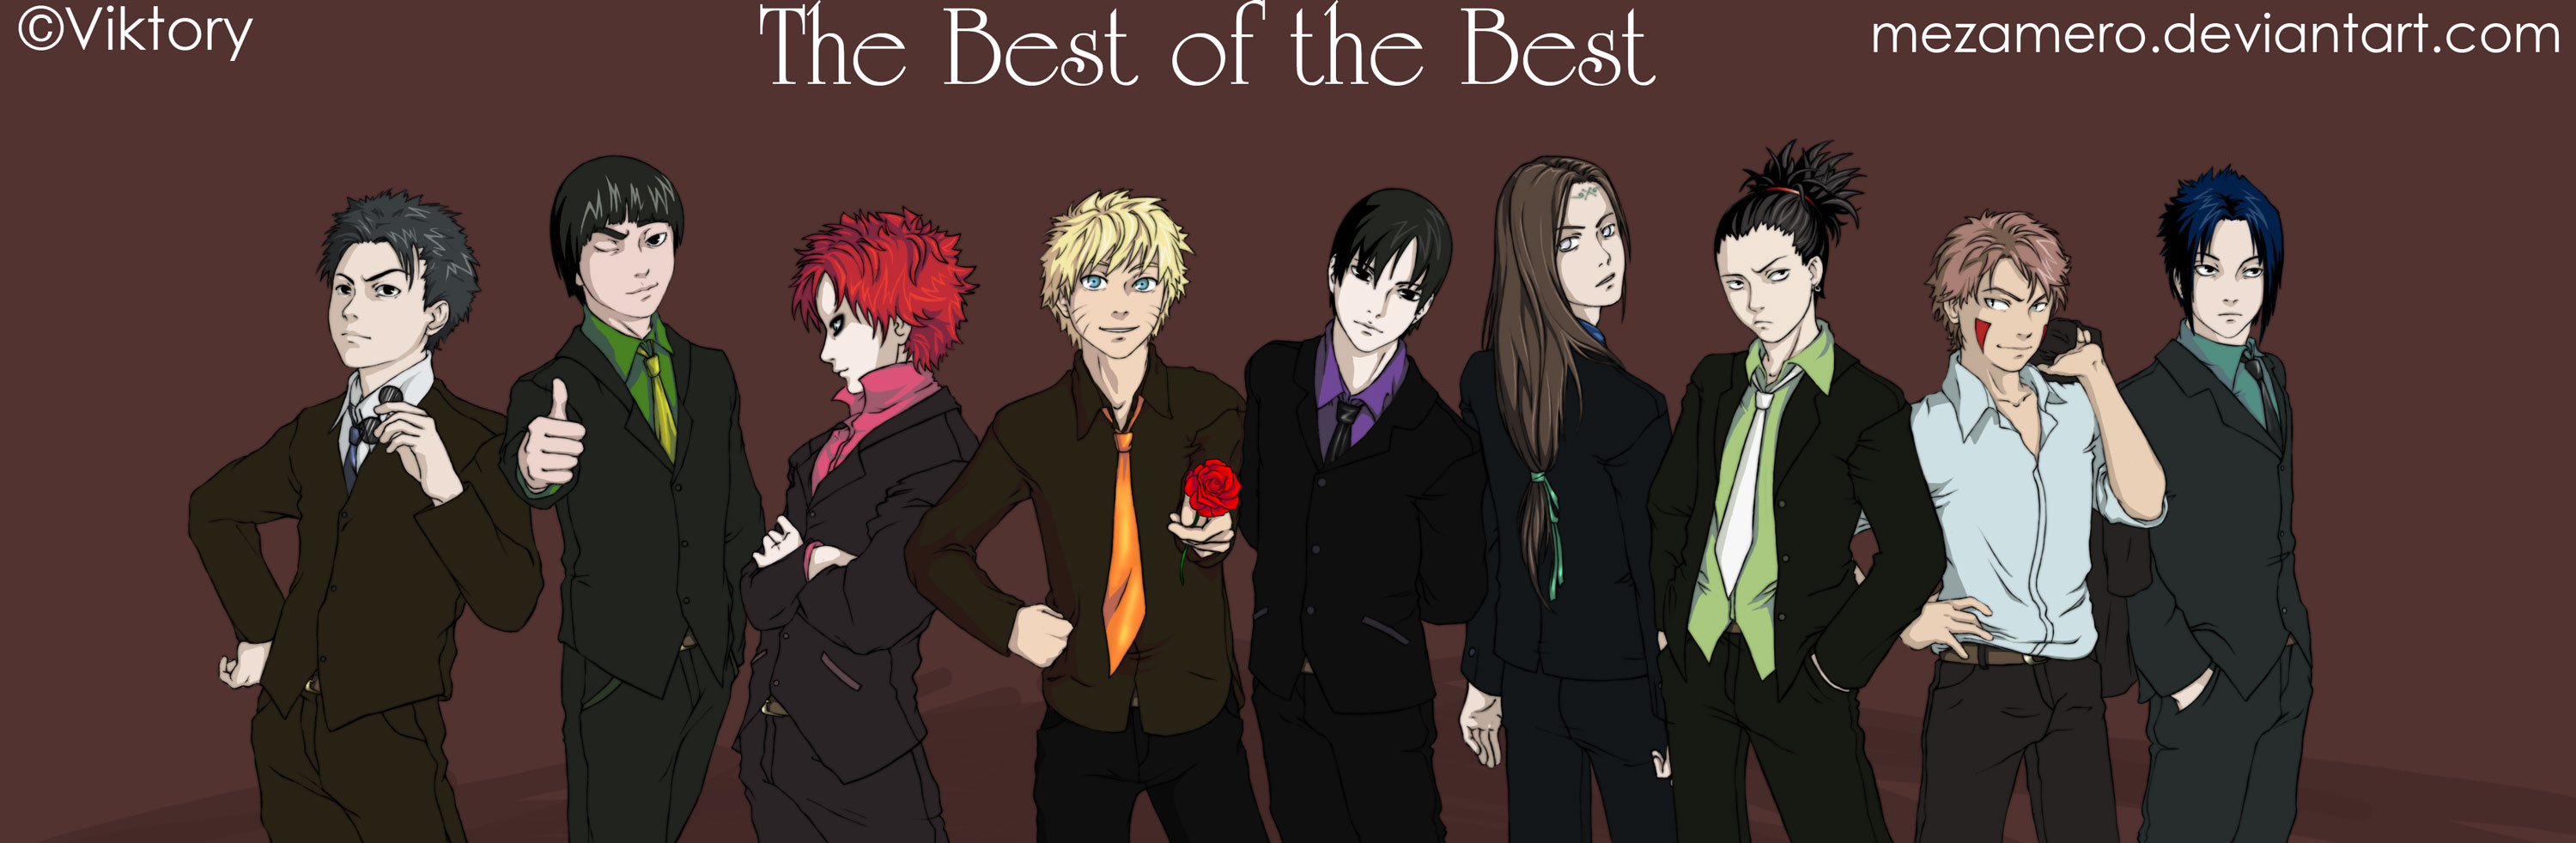 The Best of The Best by Mezamero